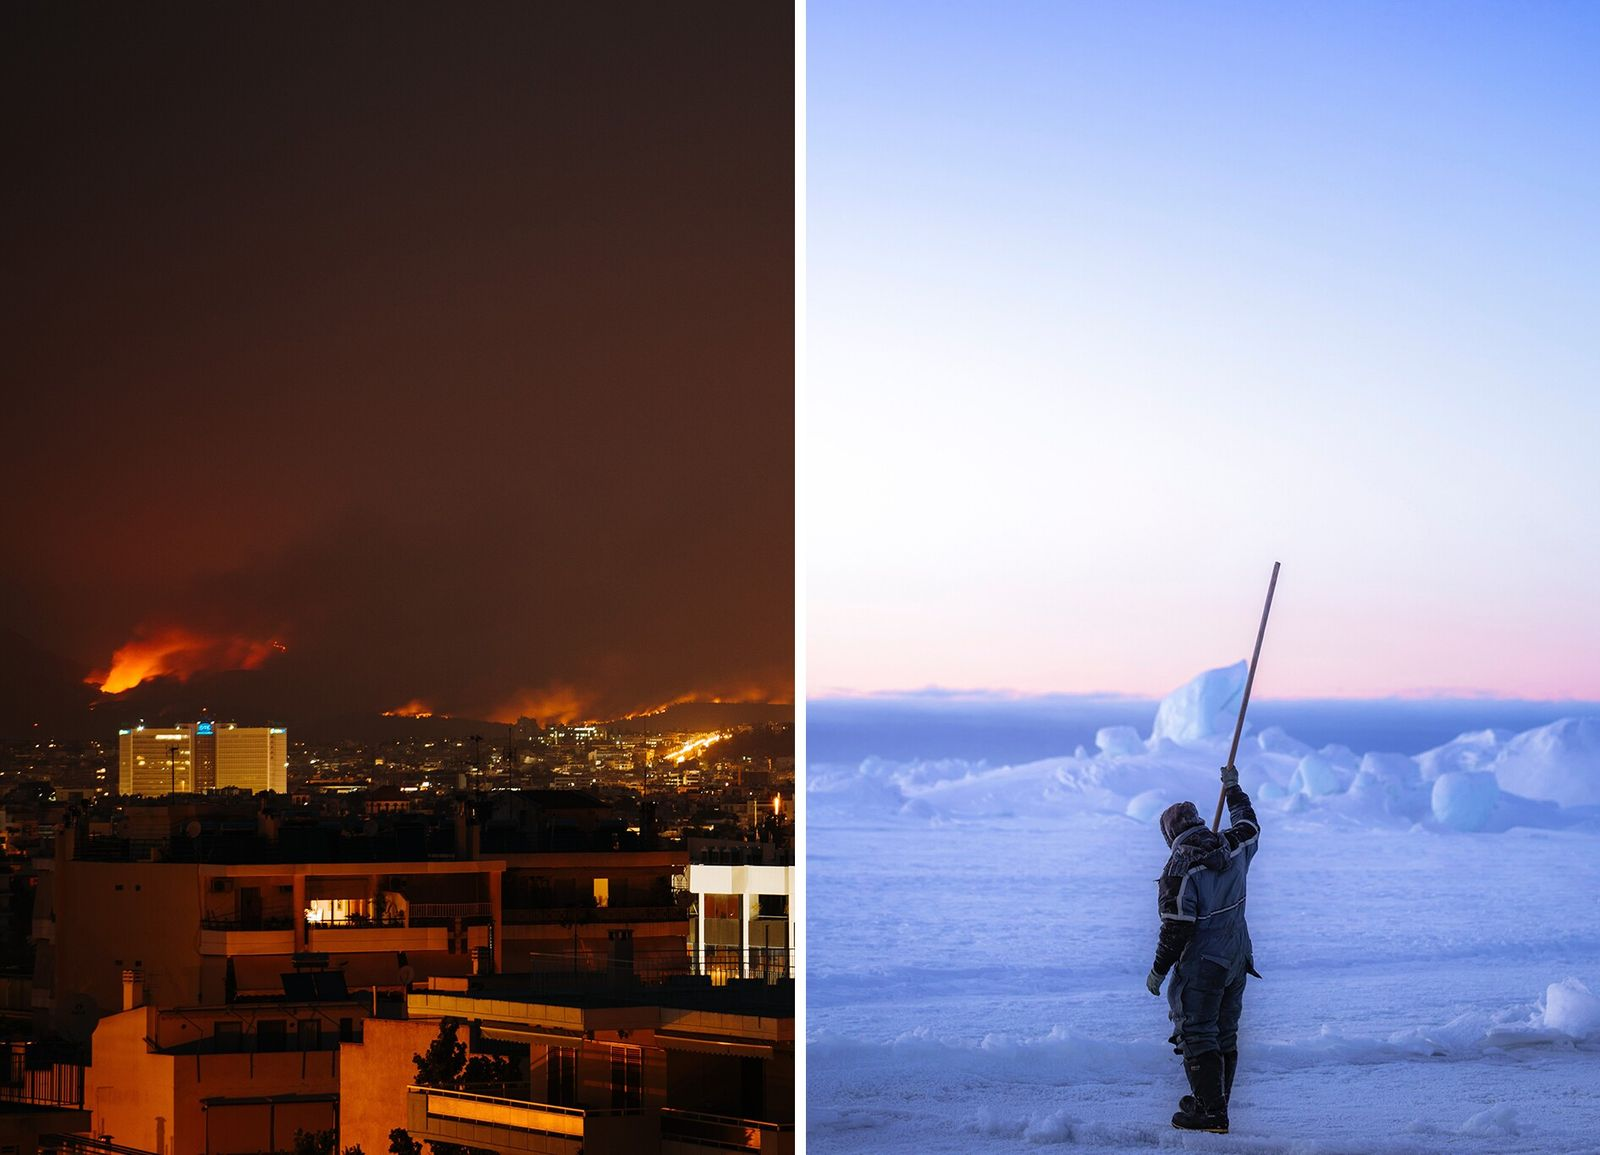 Left: In August 2021 over 500 wildfires broke out across Greece, including this one near Athens, which ...